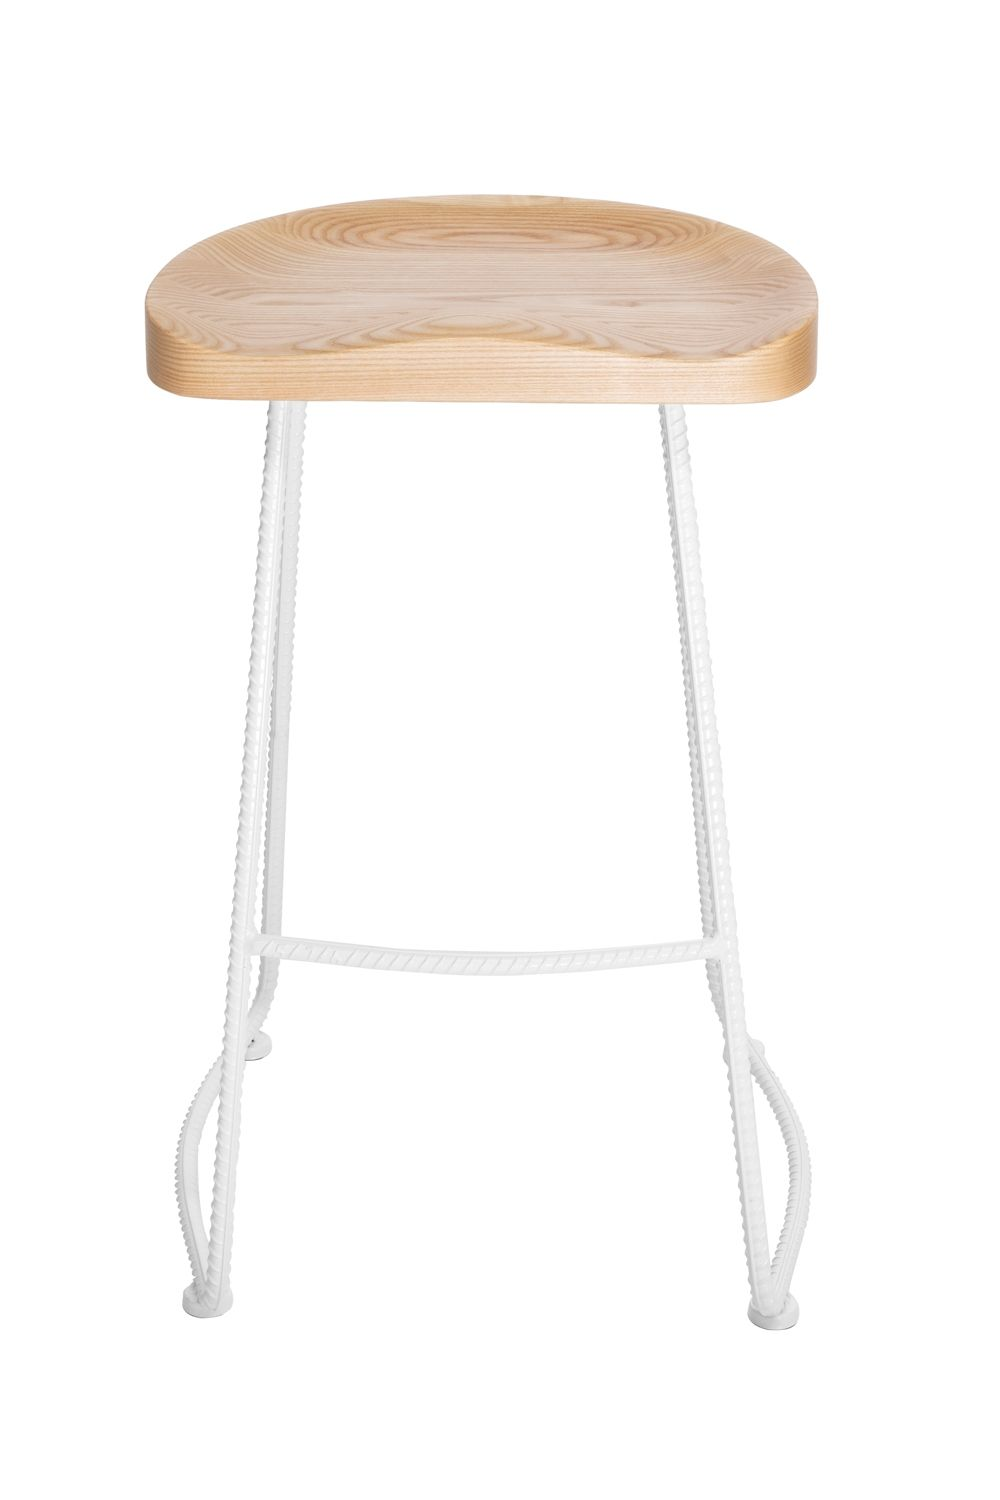 Farmhouse Tractor Stool | White & Natural